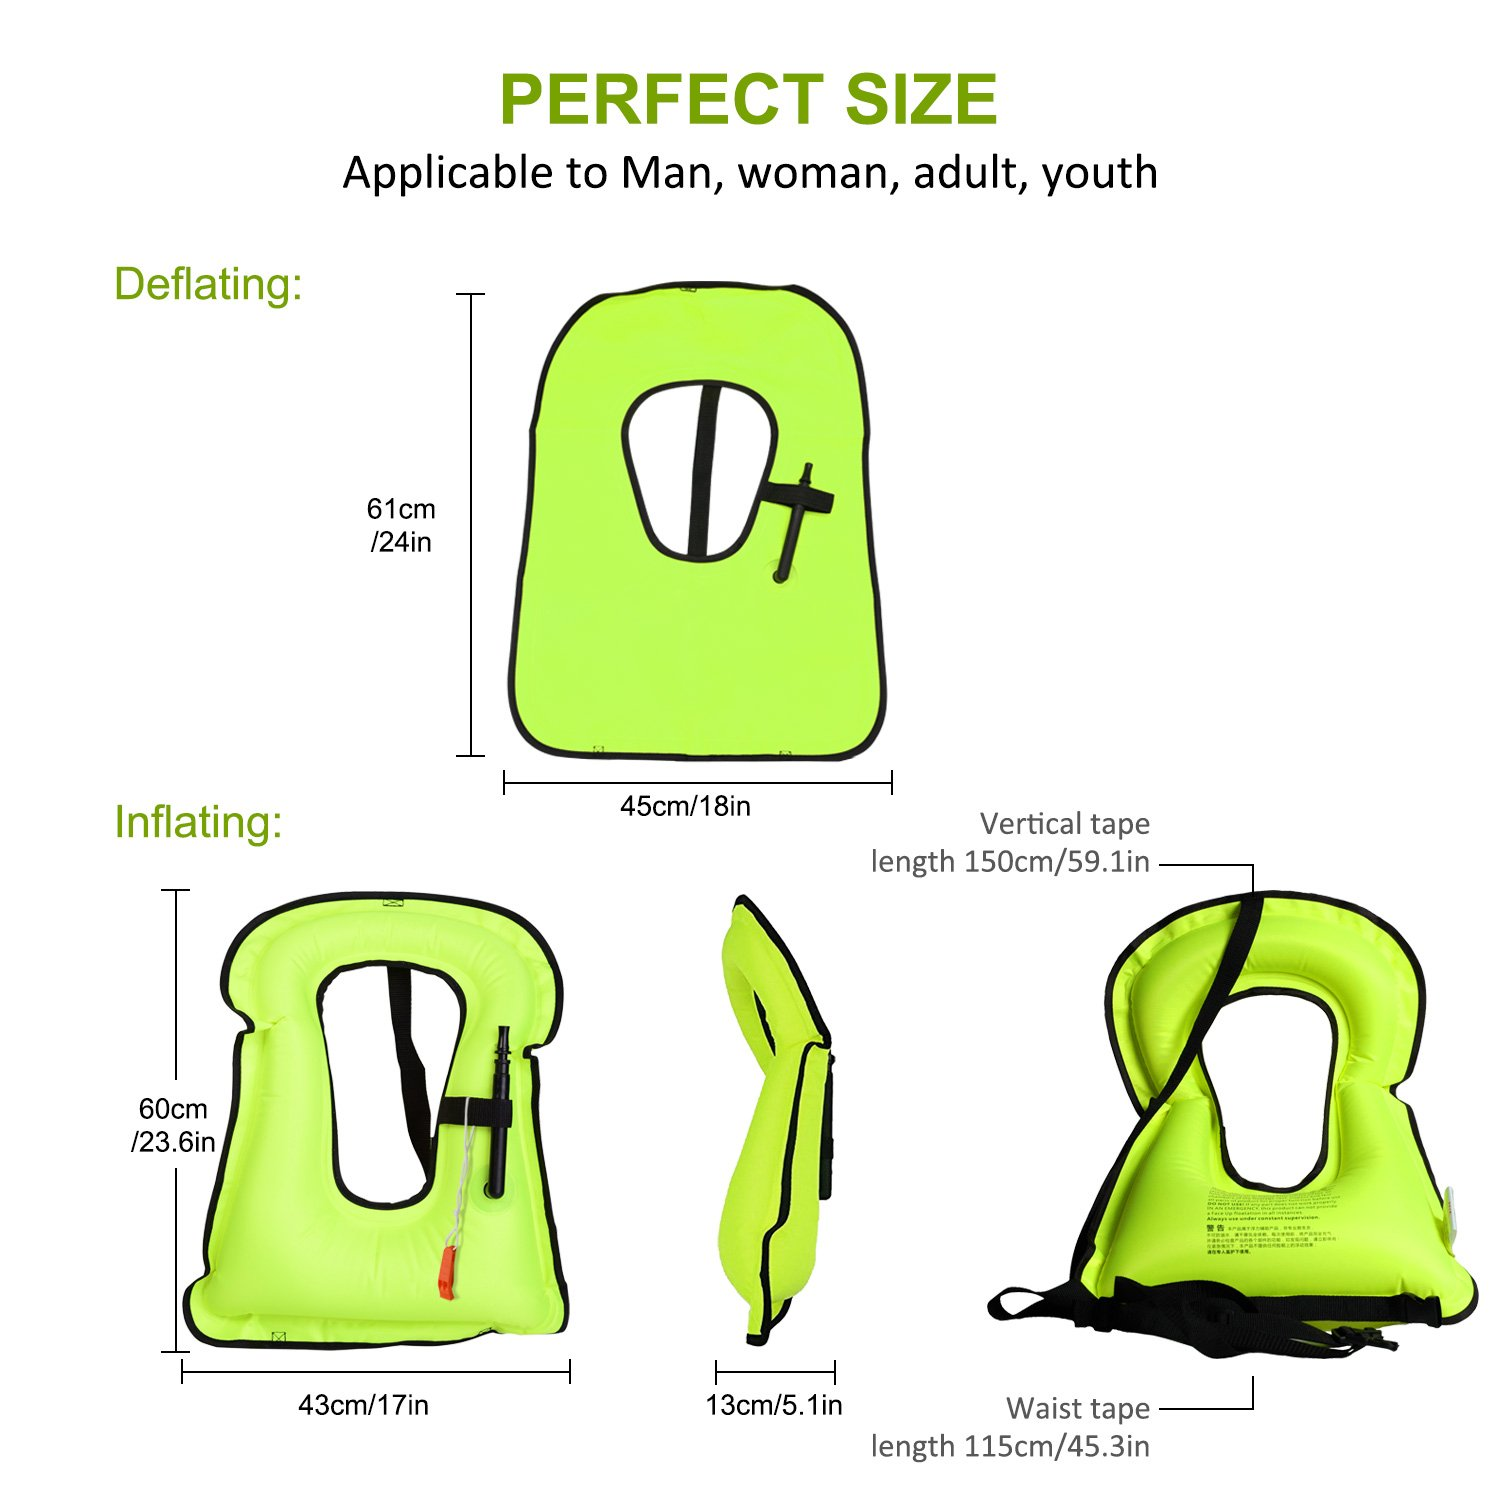 LOBKIN Men/Women Snorkel Vest Adult Inflatable Snorkeling Jacket Diving Swimming Safety Jacket (Green)